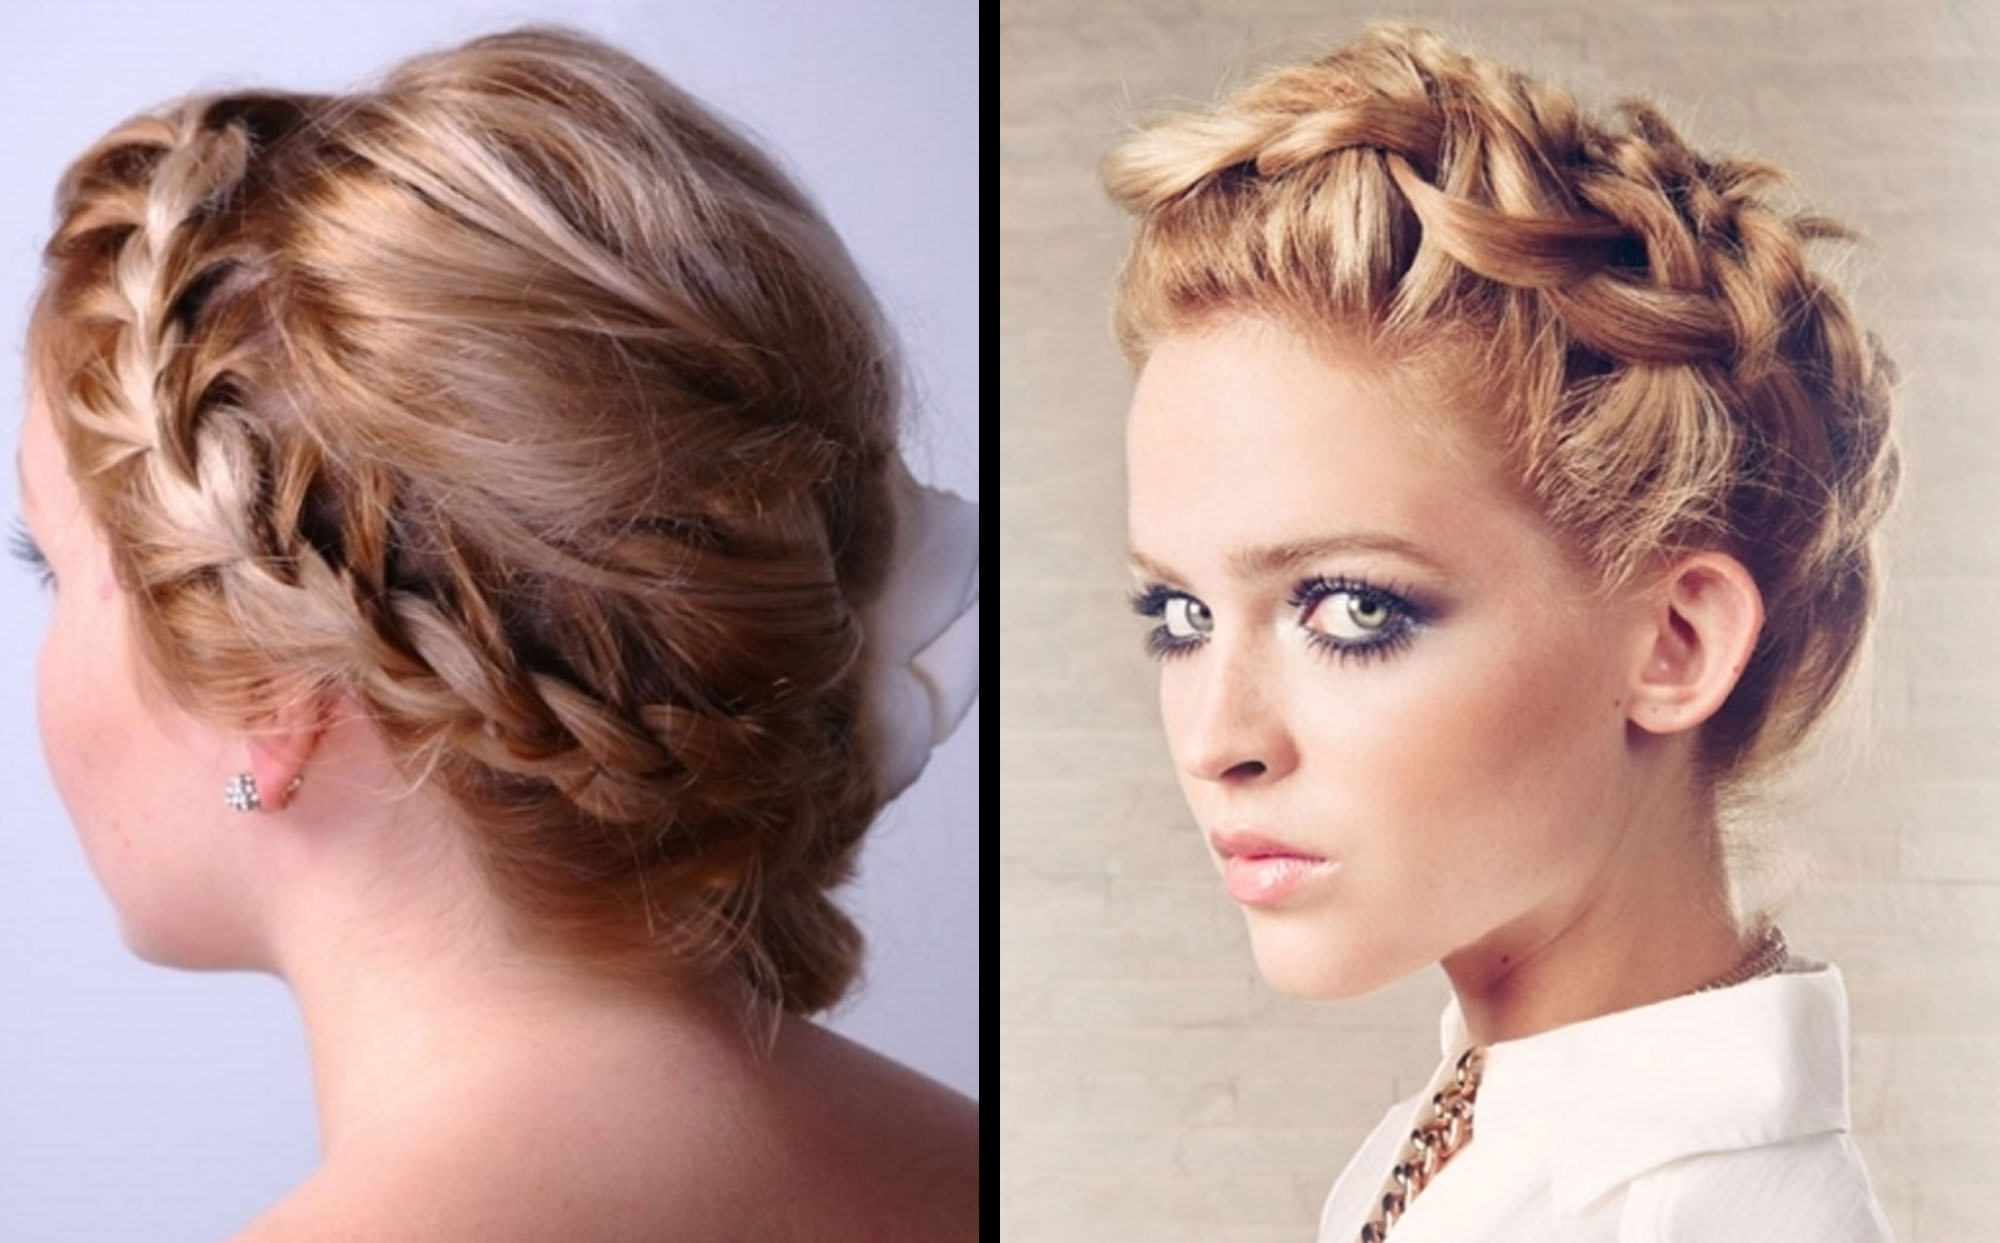 Famous Braided Evening Hairstyles With Formal Hairstyles Braided Updo Wedding Hairdo Hair (View 14 of 15)